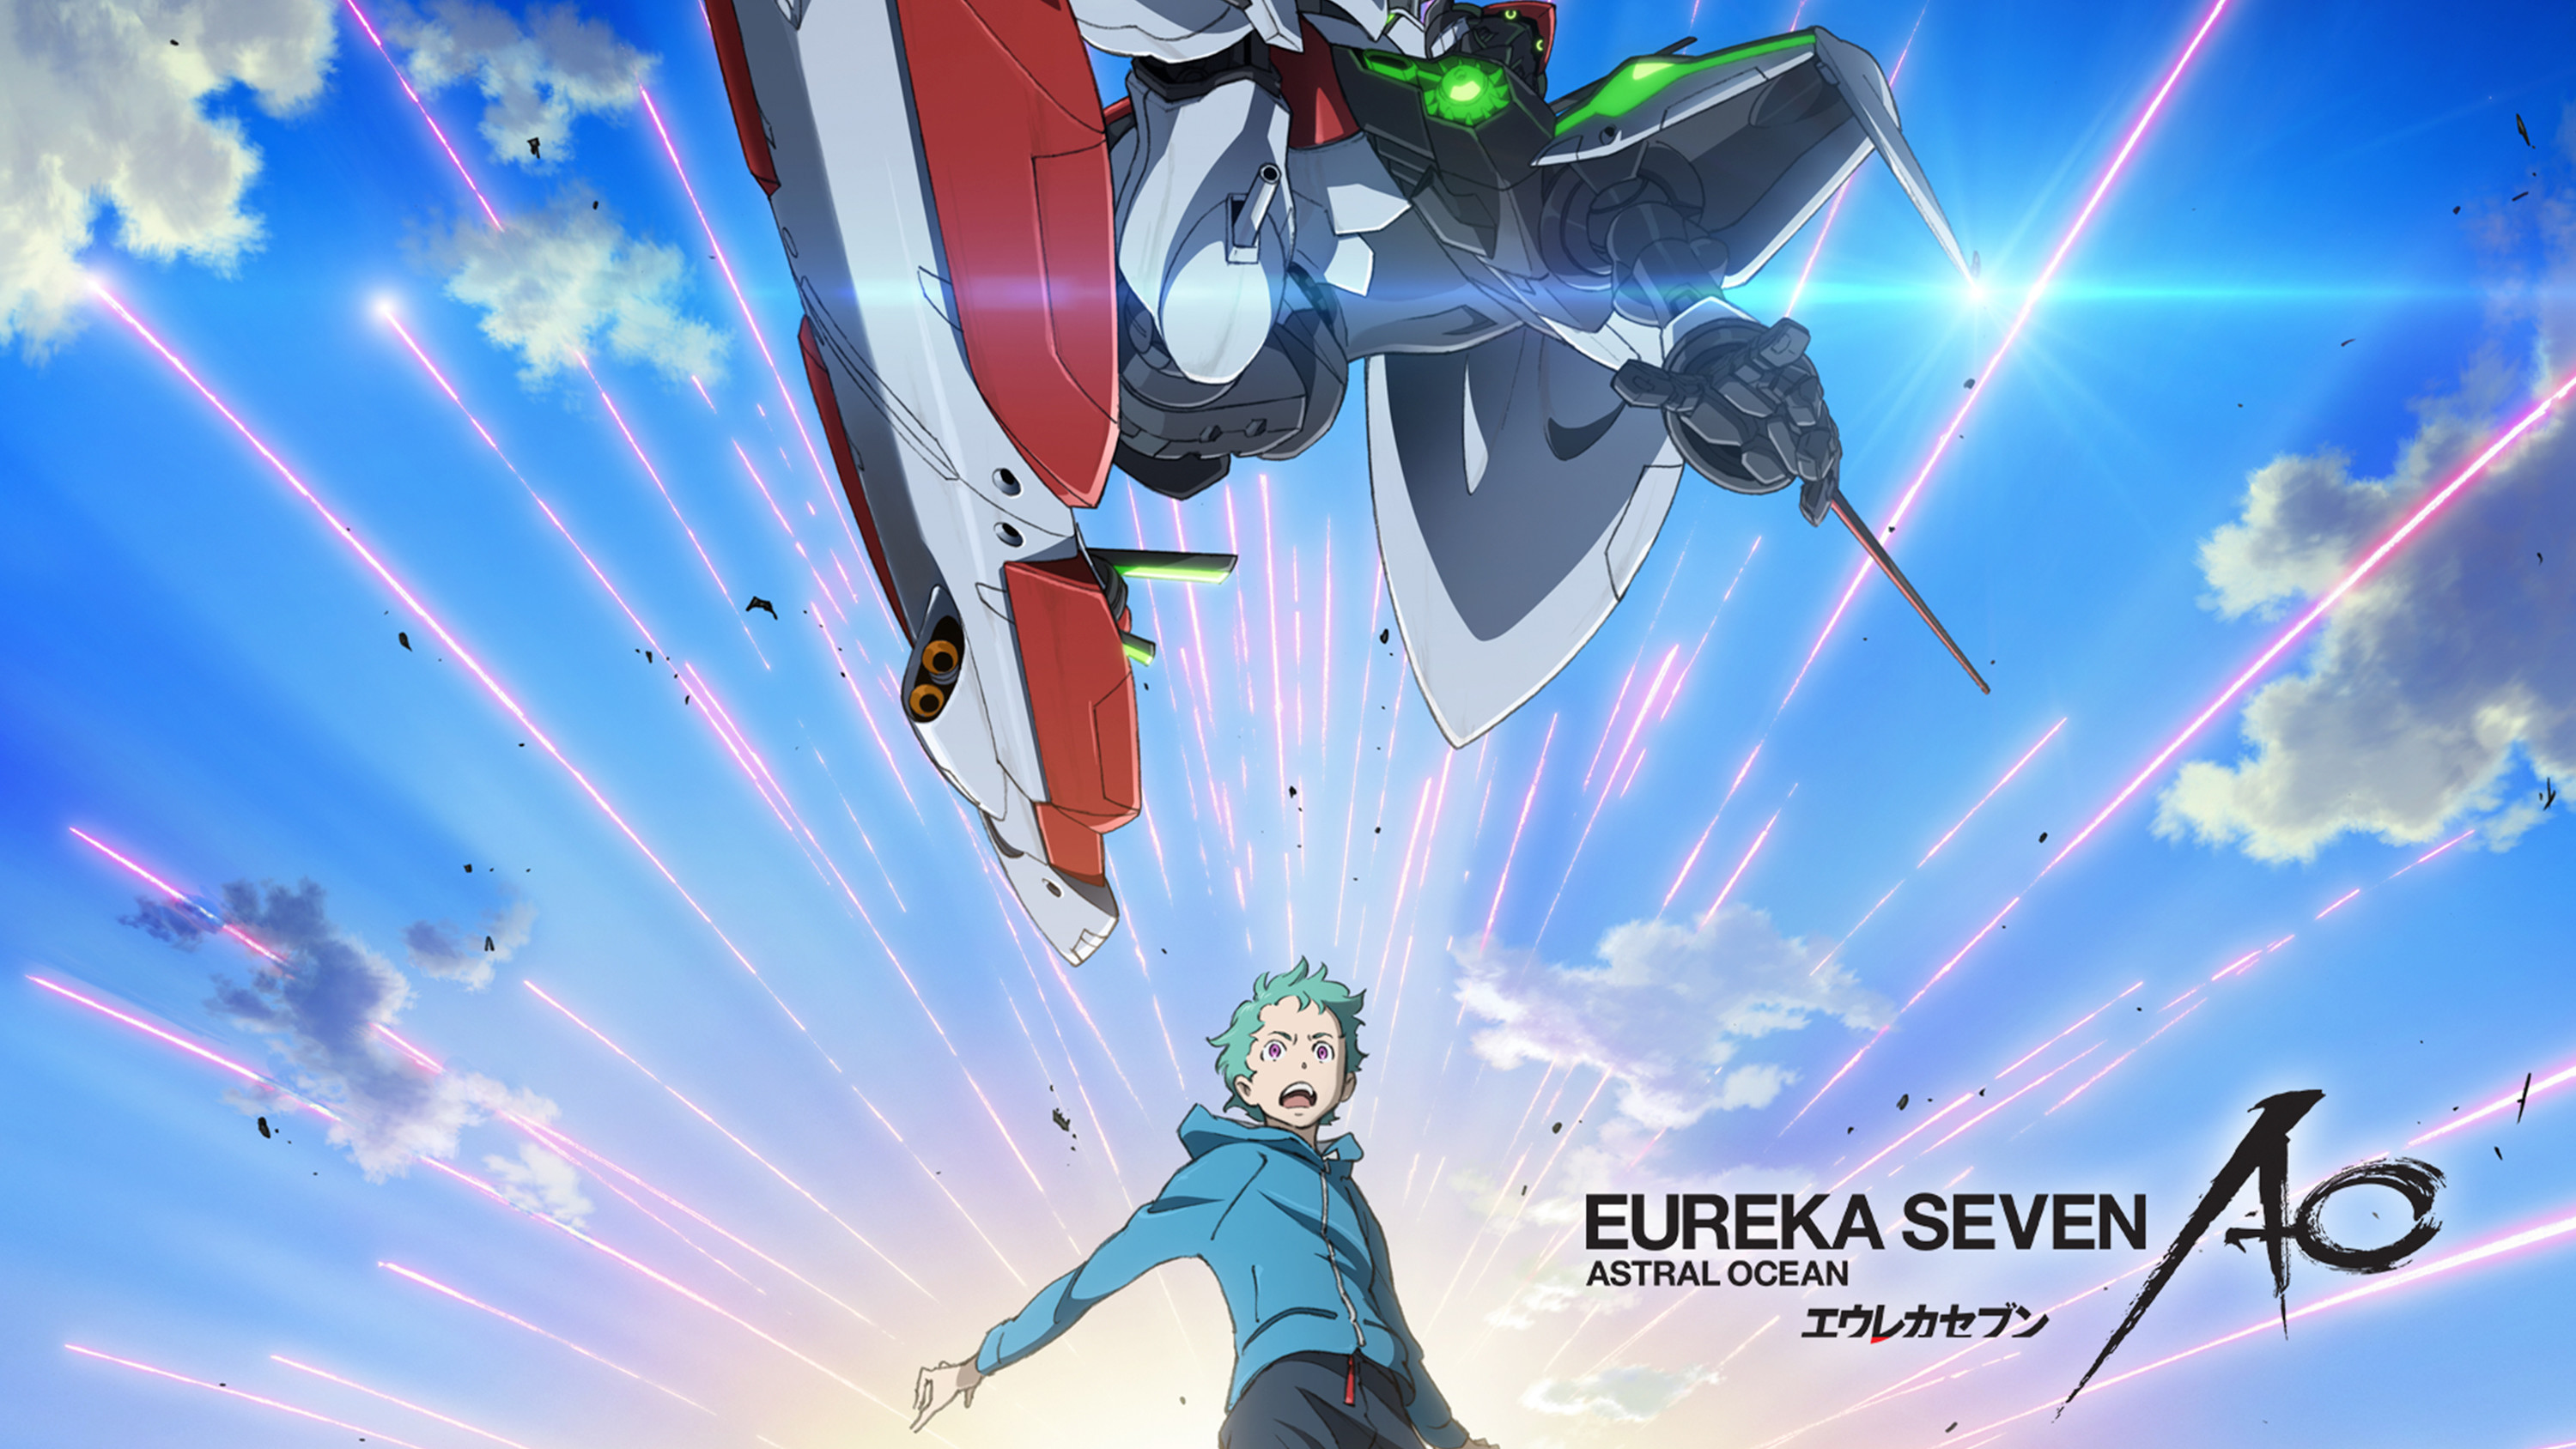 Res: 3000x1688, 1920x1080 Get the latest eureka seven, girl, robot news, pictures and  videos and learn all about eureka seven, girl, robot from wallpapers4u.org,  ...